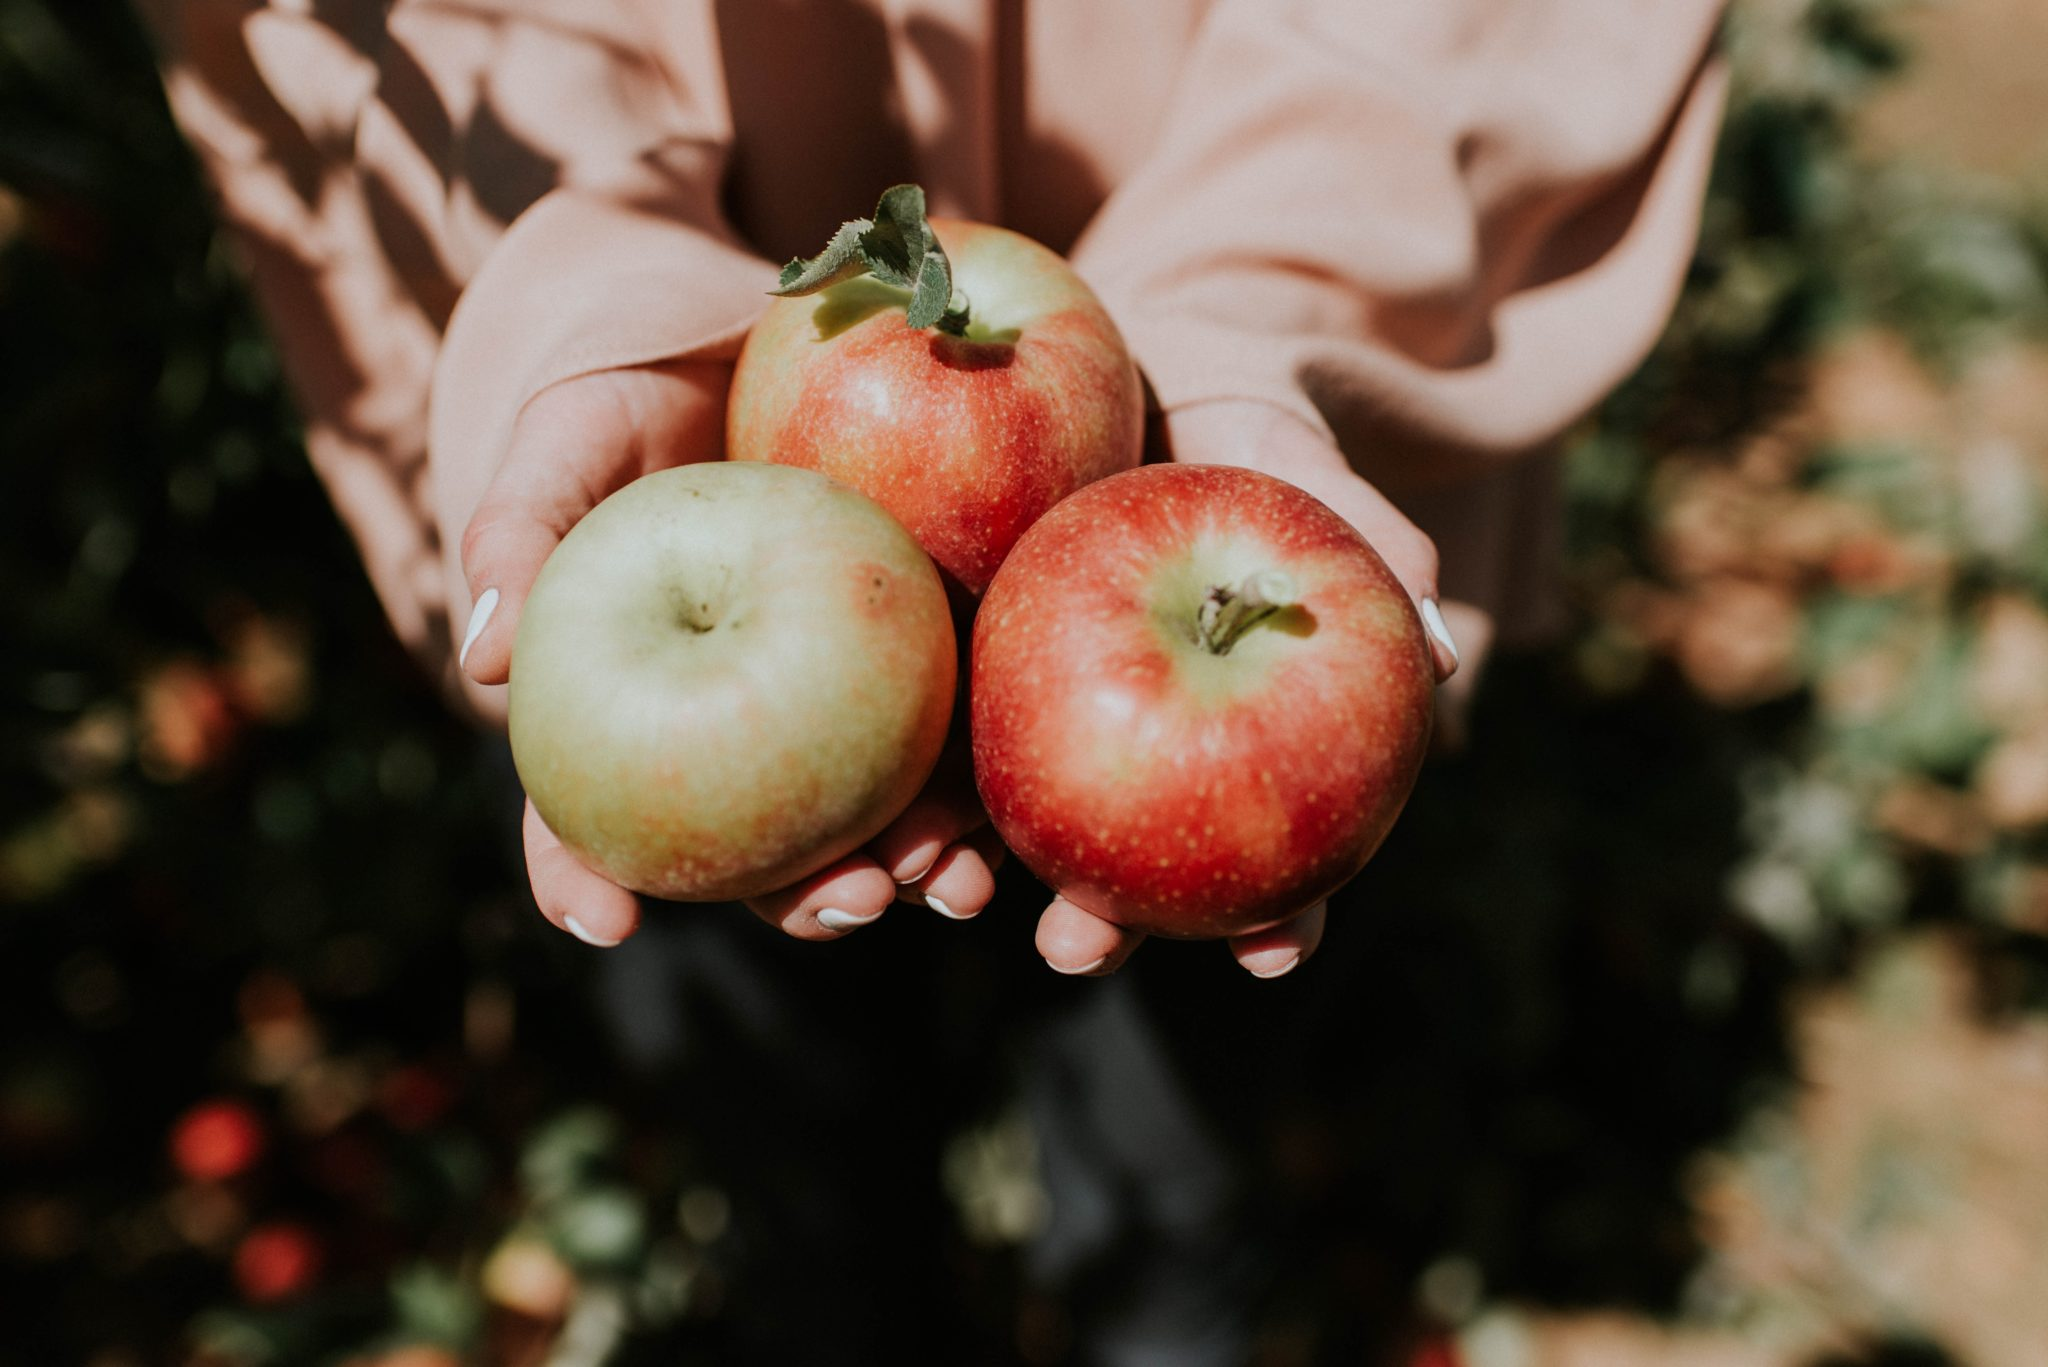 Apples can be internally beneficial as well as good for your skin.